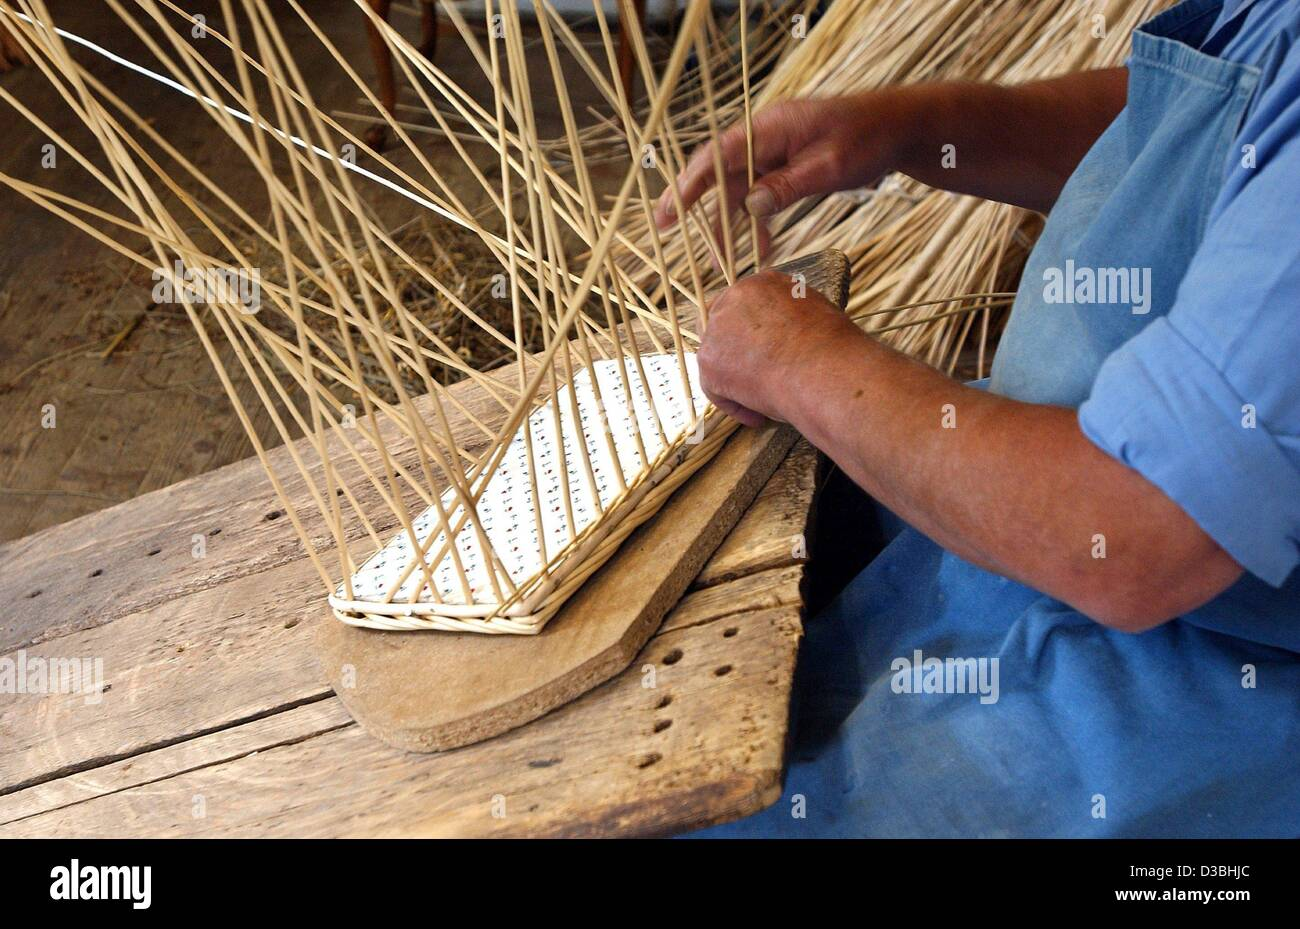 (dpa) - Basket maker Rudolf Ammann works on a basket with a wooden base in his workshop in Oberstdorf, Germany, - Stock Image